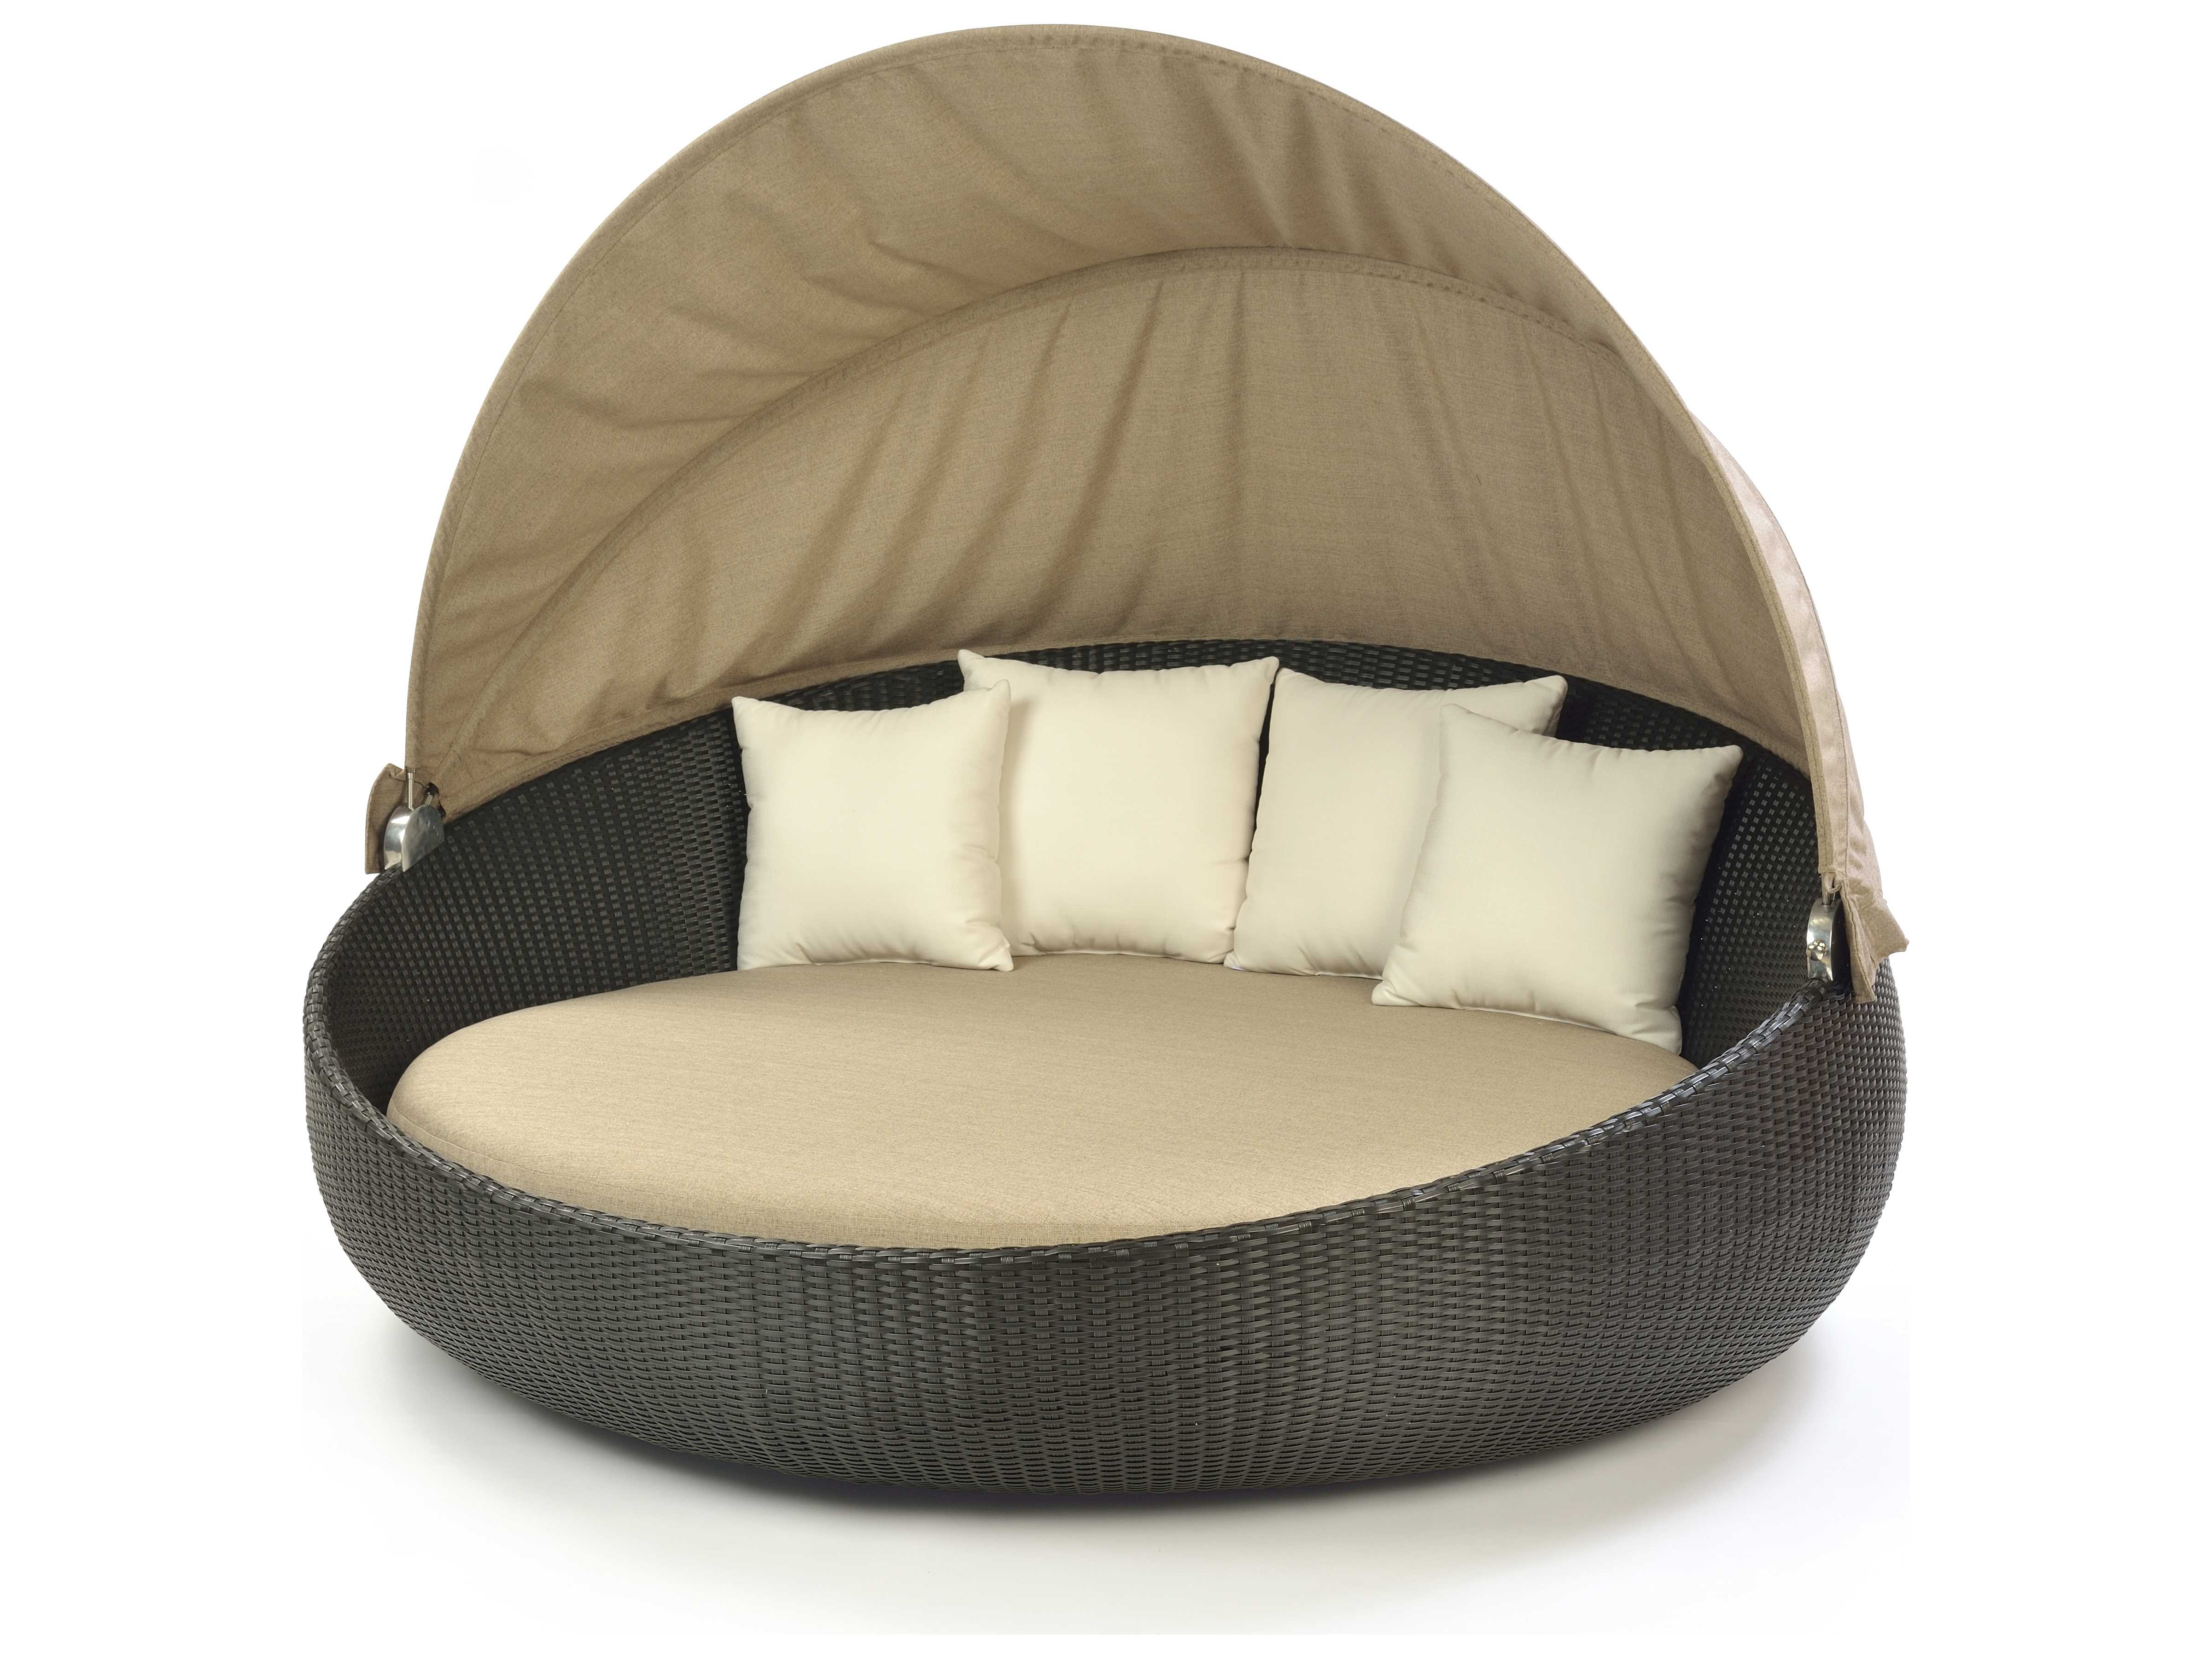 Caluco Dijon Round Daybed Replacement Cushion C825 2016